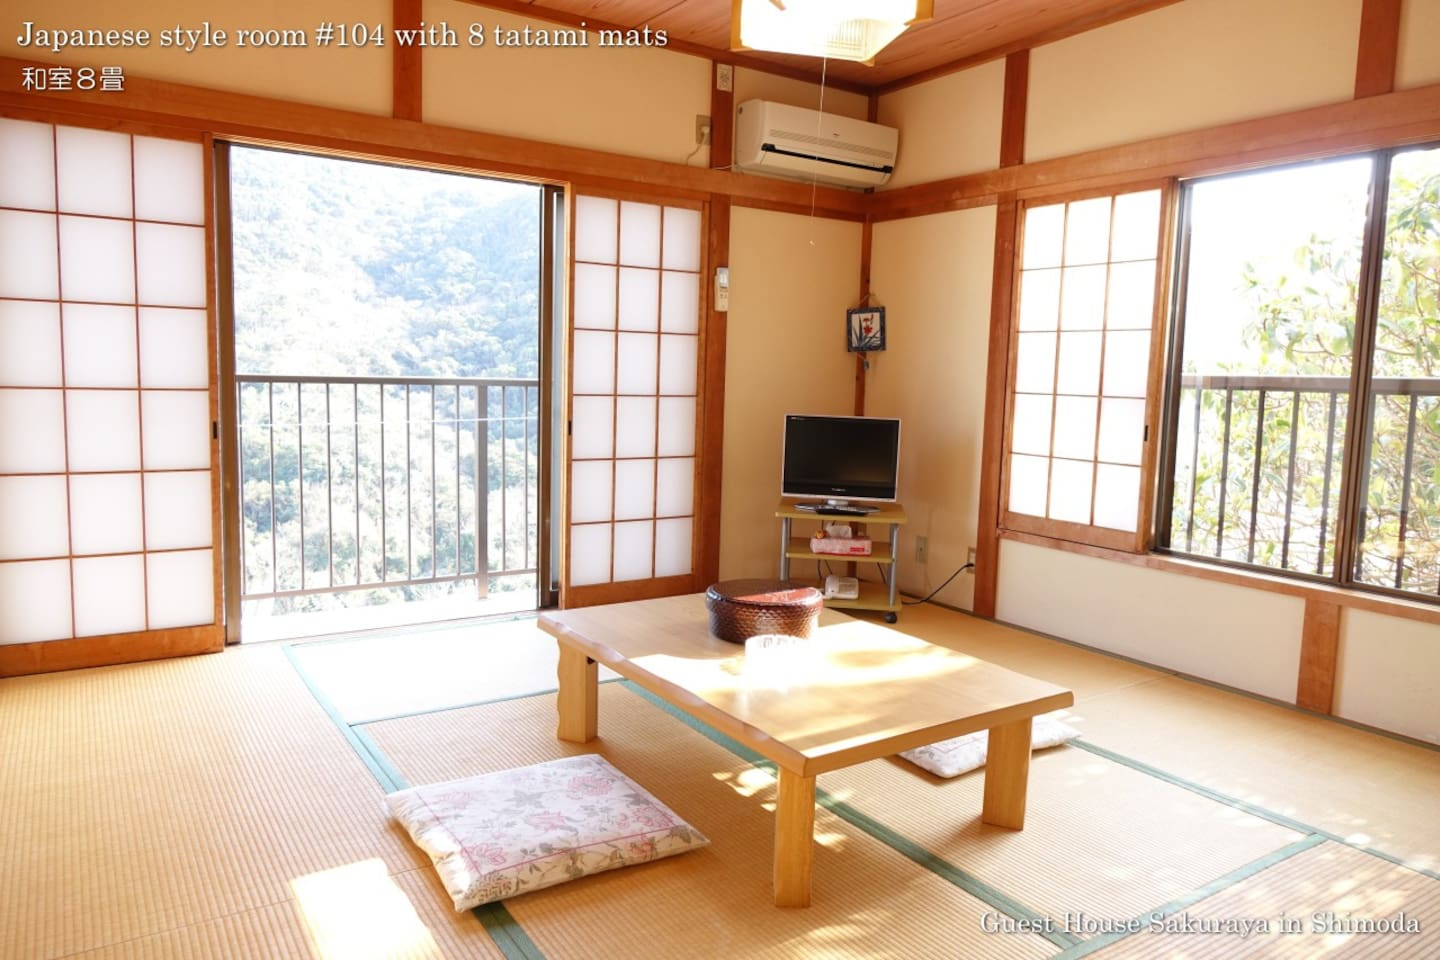 Japanese style room with 8 tatami mats